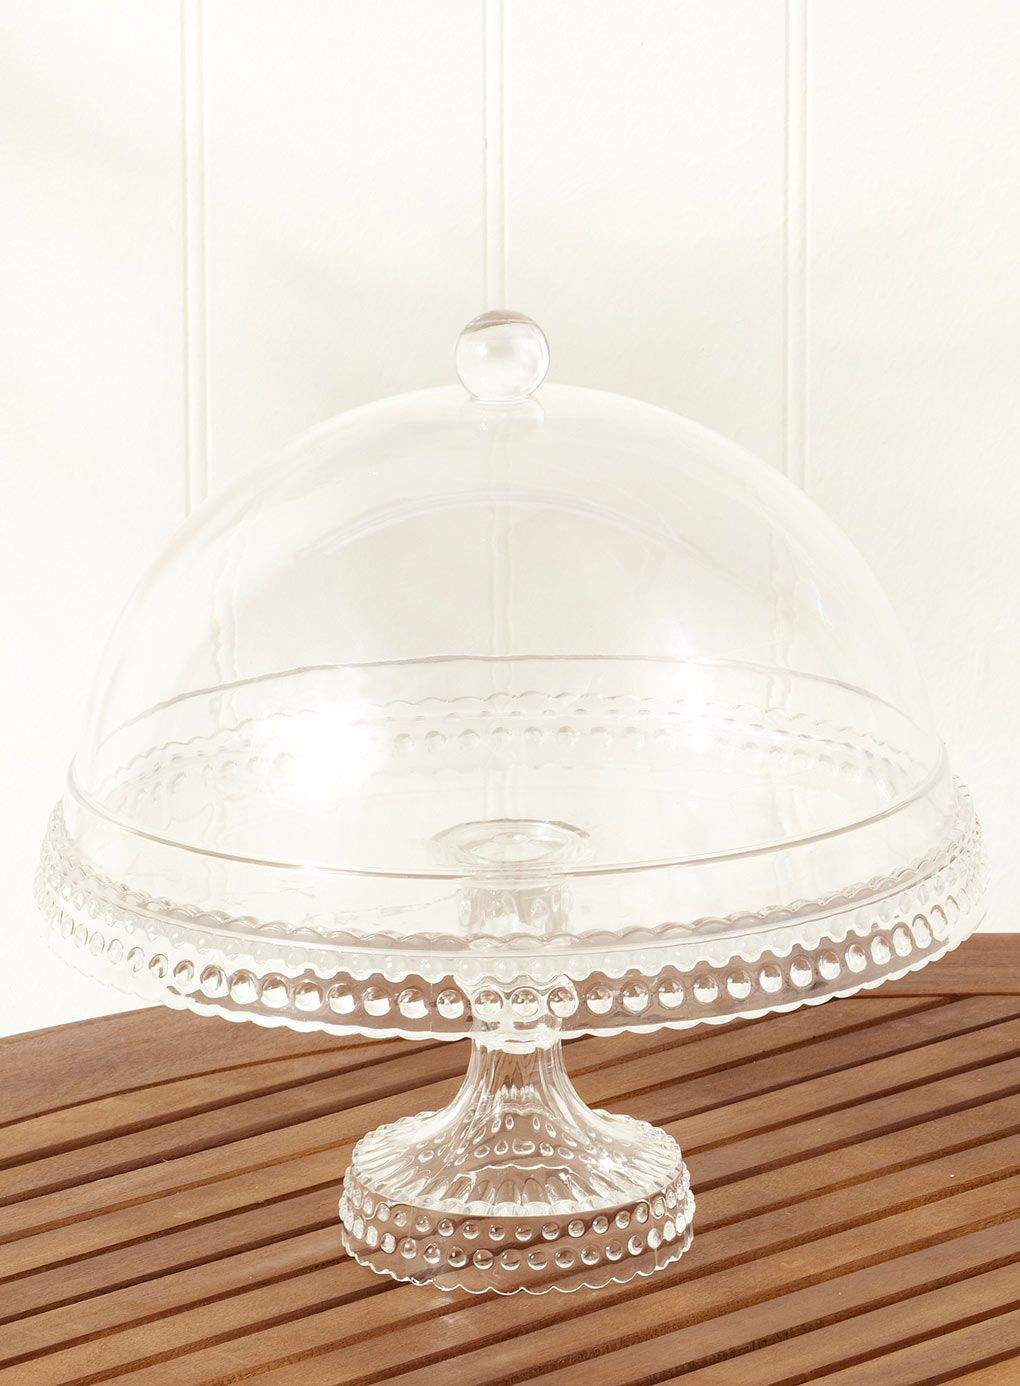 Cake stand cake stands pinterest for Beautiful cake stands